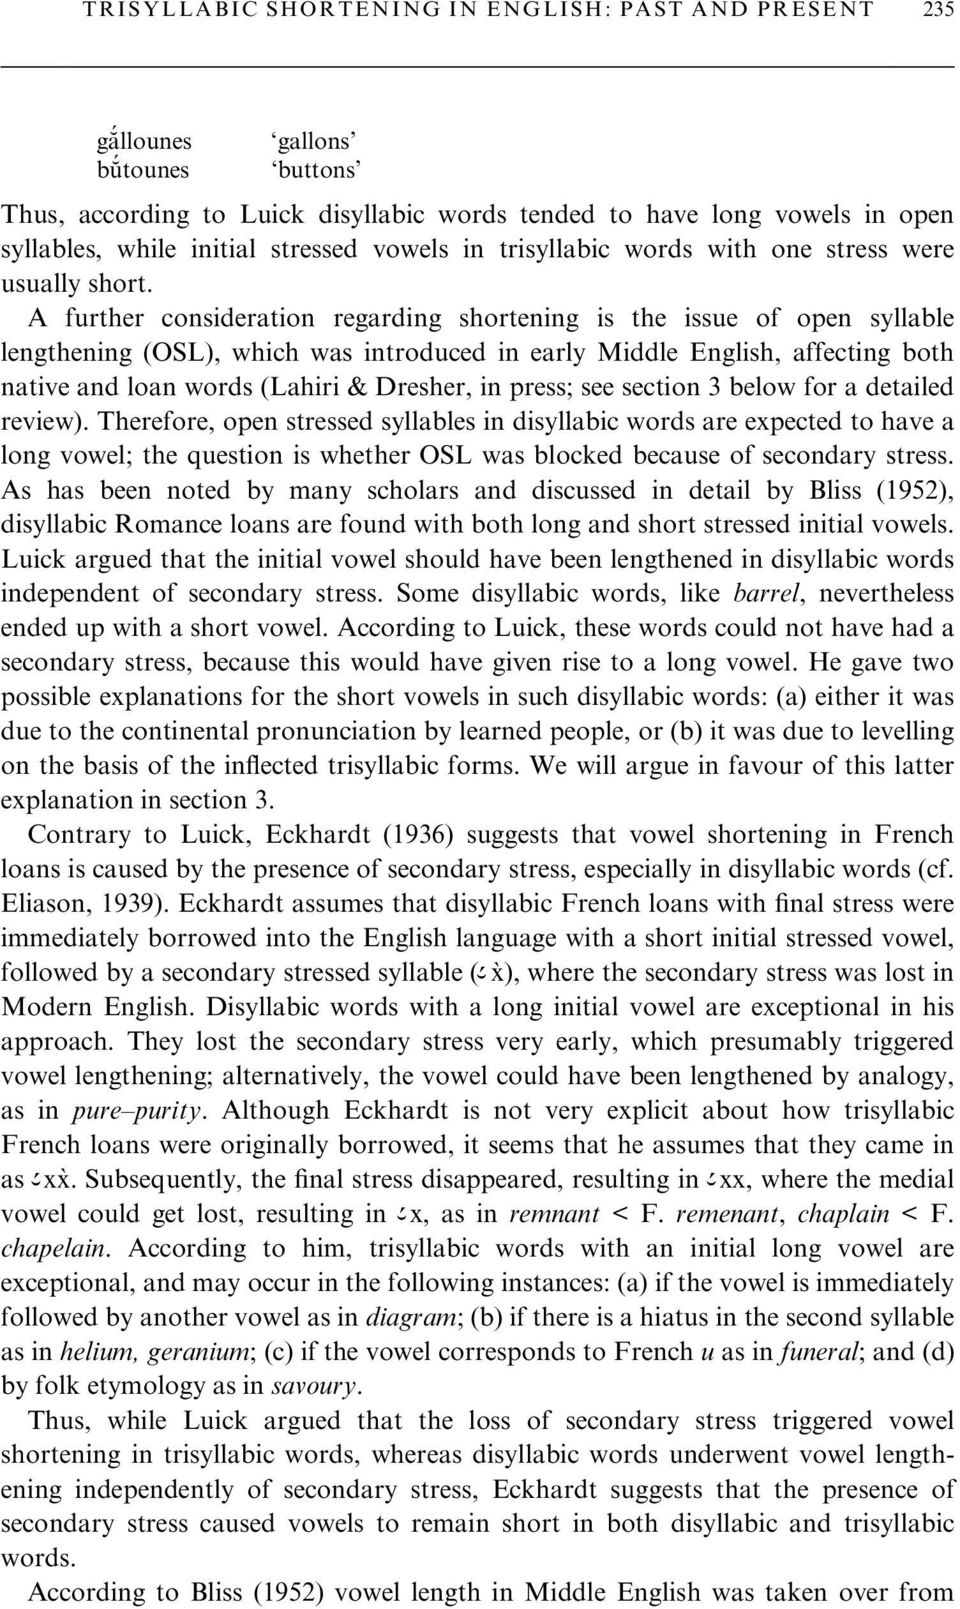 A further consideration regarding shortening is the issue of open syllable lengthening (OSL), which was introduced in early Middle English, affecting both native and loan words (Lahiri & Dresher, in